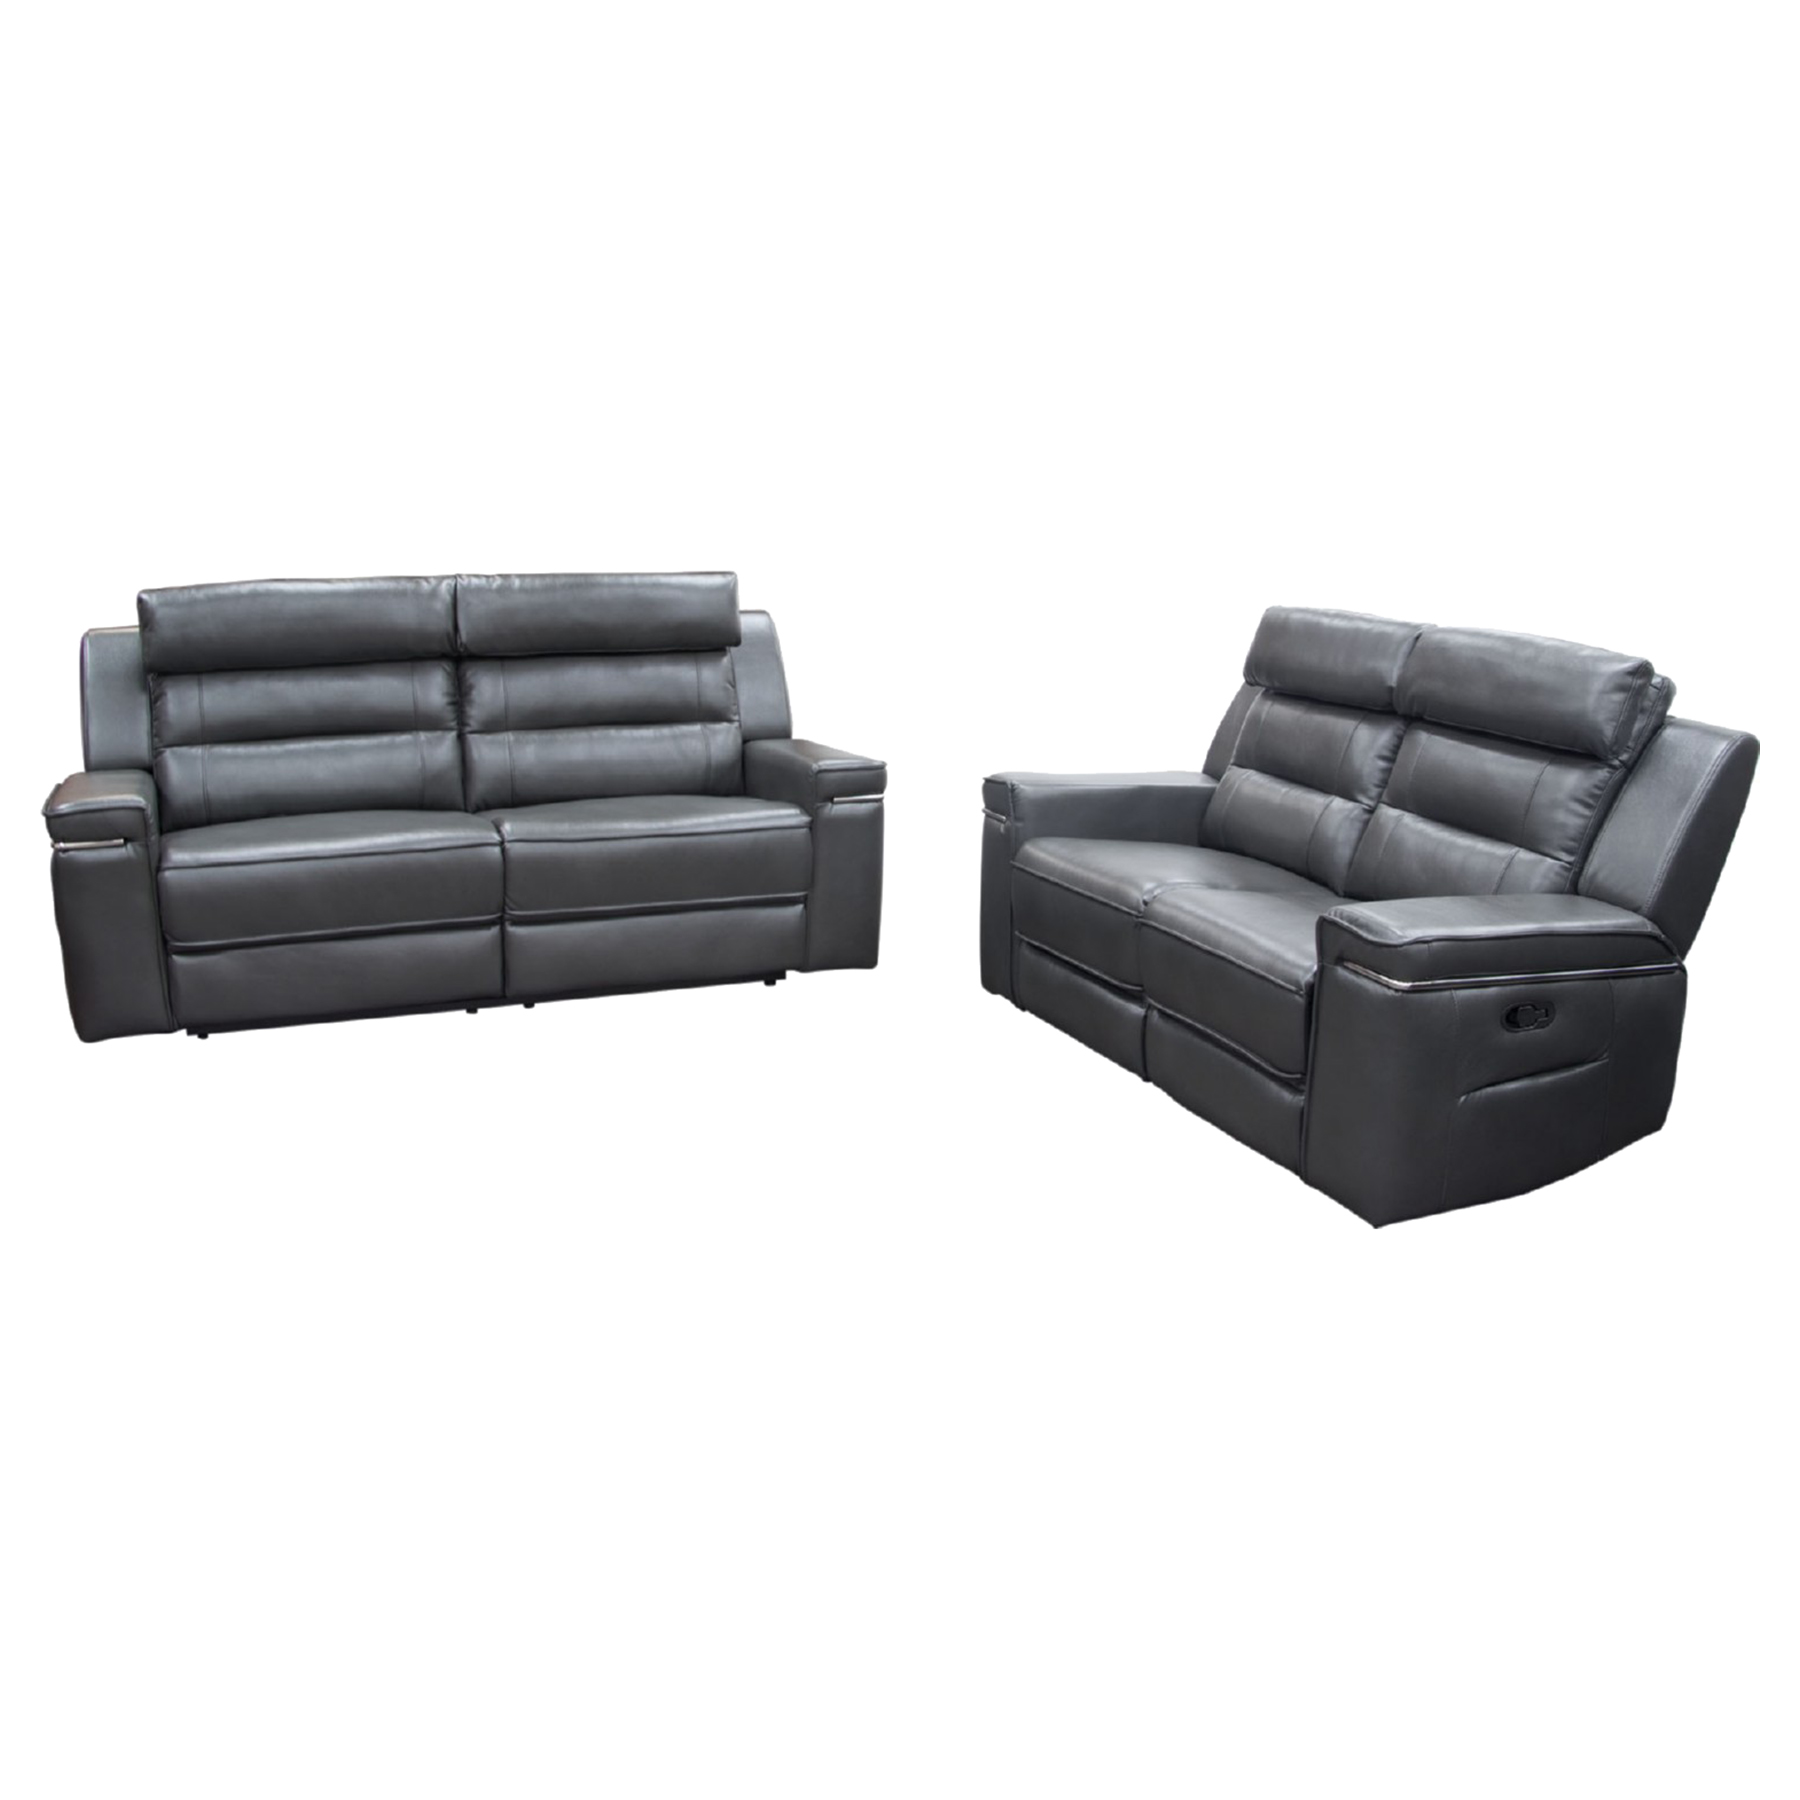 Duncan Dual Reclining Sofa and Loveseat - Leatherette, Slate Gray - DS-DUNCANRSLGR